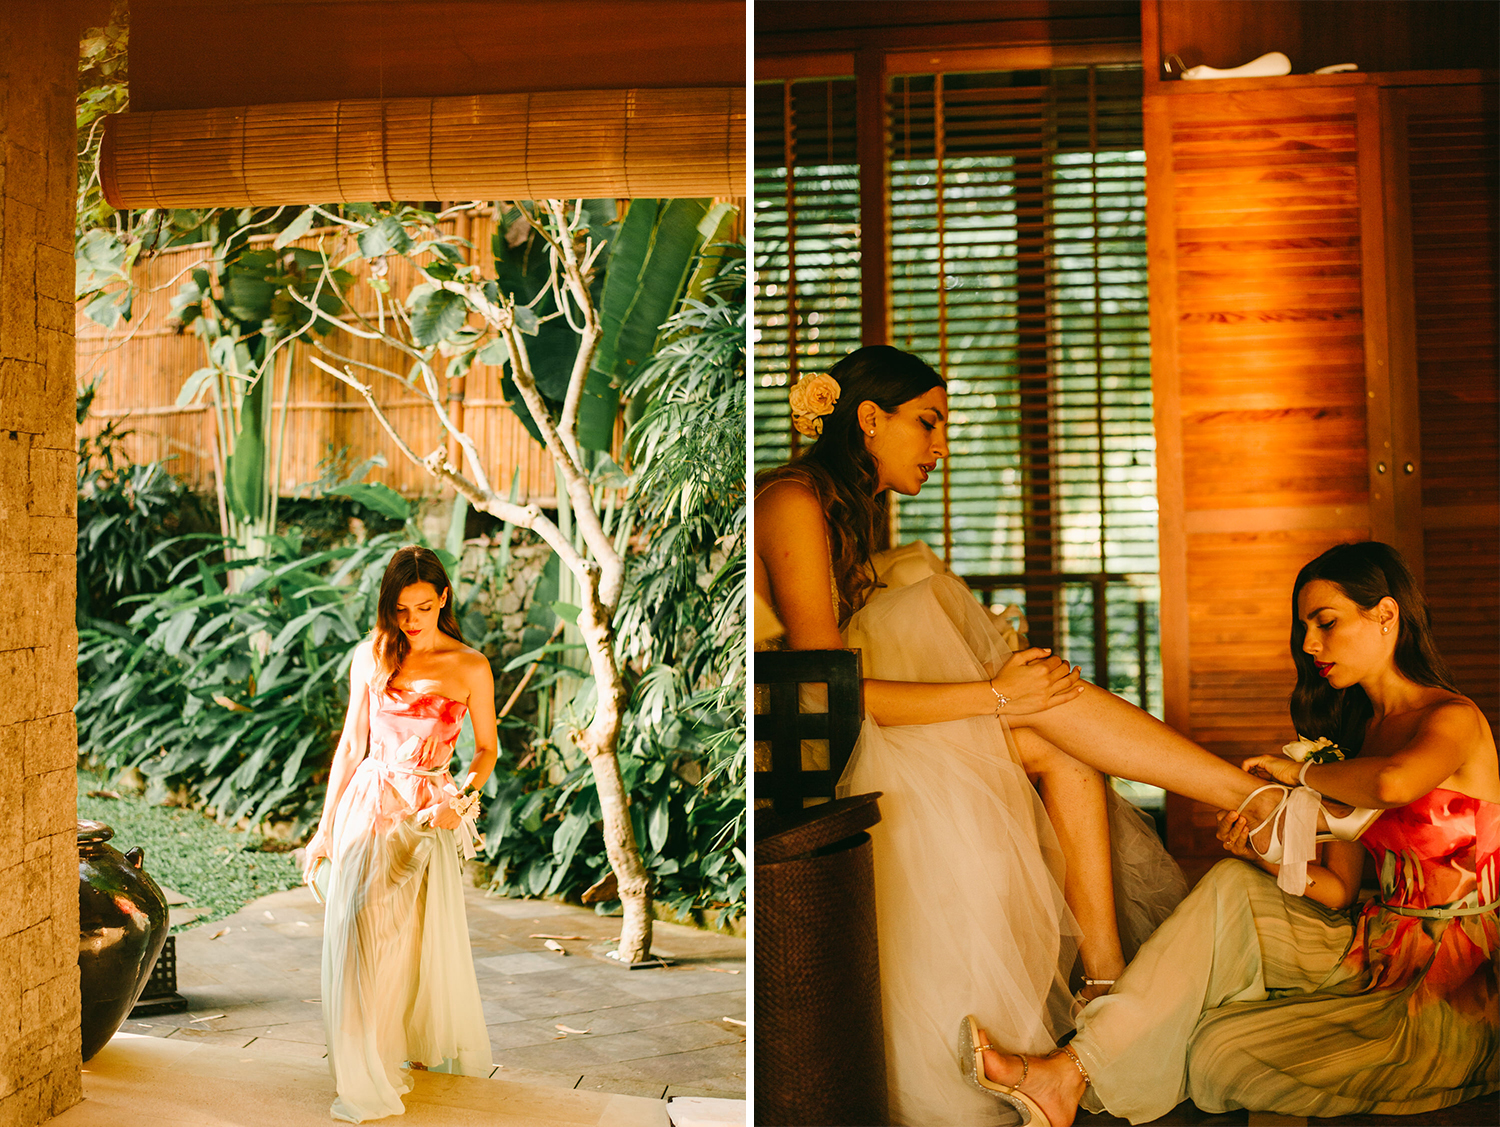 bali-wedding-destination-wedding-in-bali-bali-photographer-the-sanctuary-villa-profesional-bali-wedding-photographer-diktatphotography-clement-armine-wedding-39